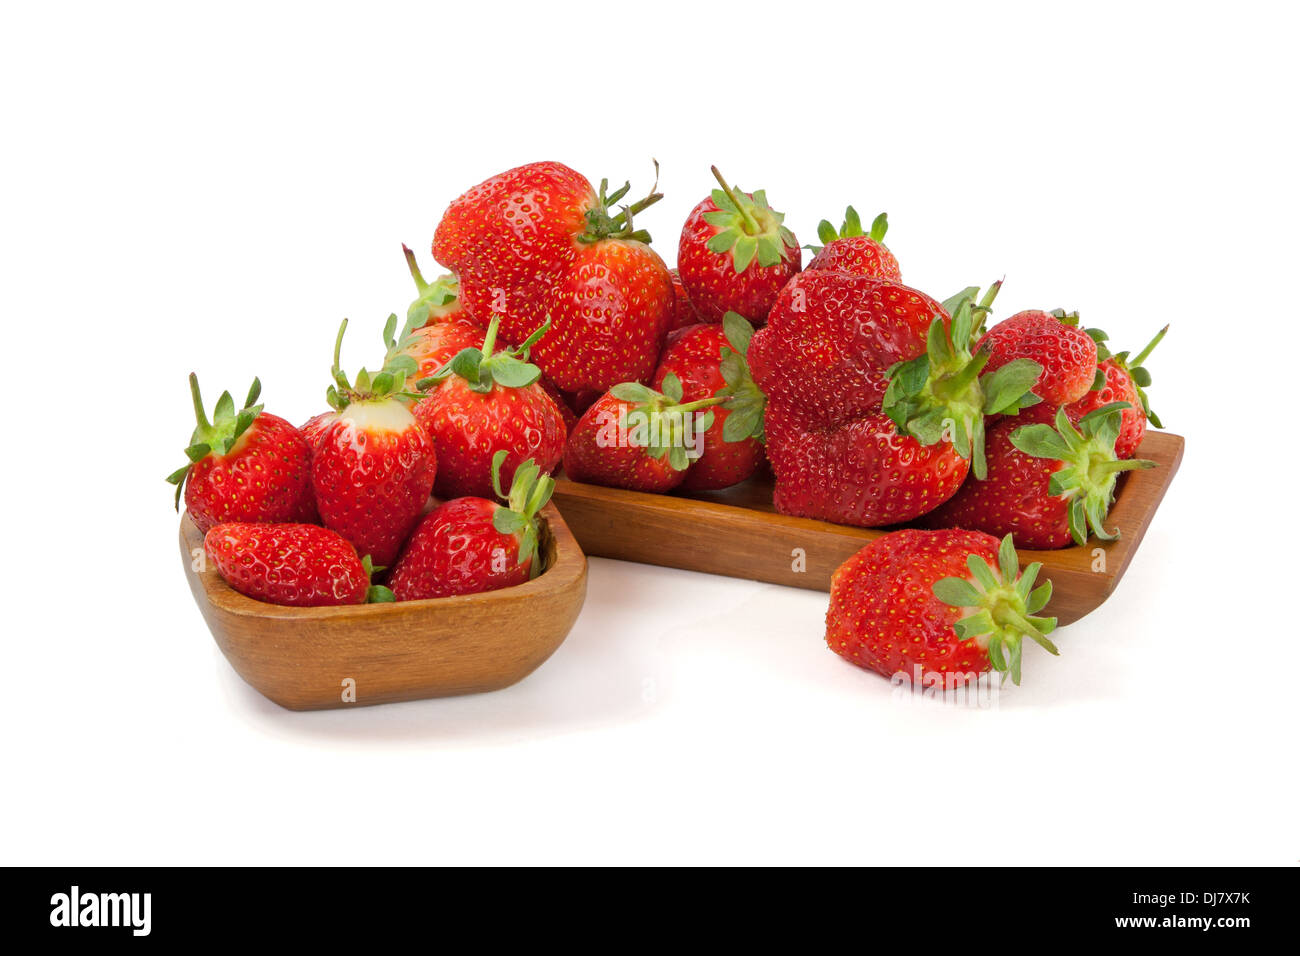 Strawberries in a wooden bowl isolated on white background - Stock Image